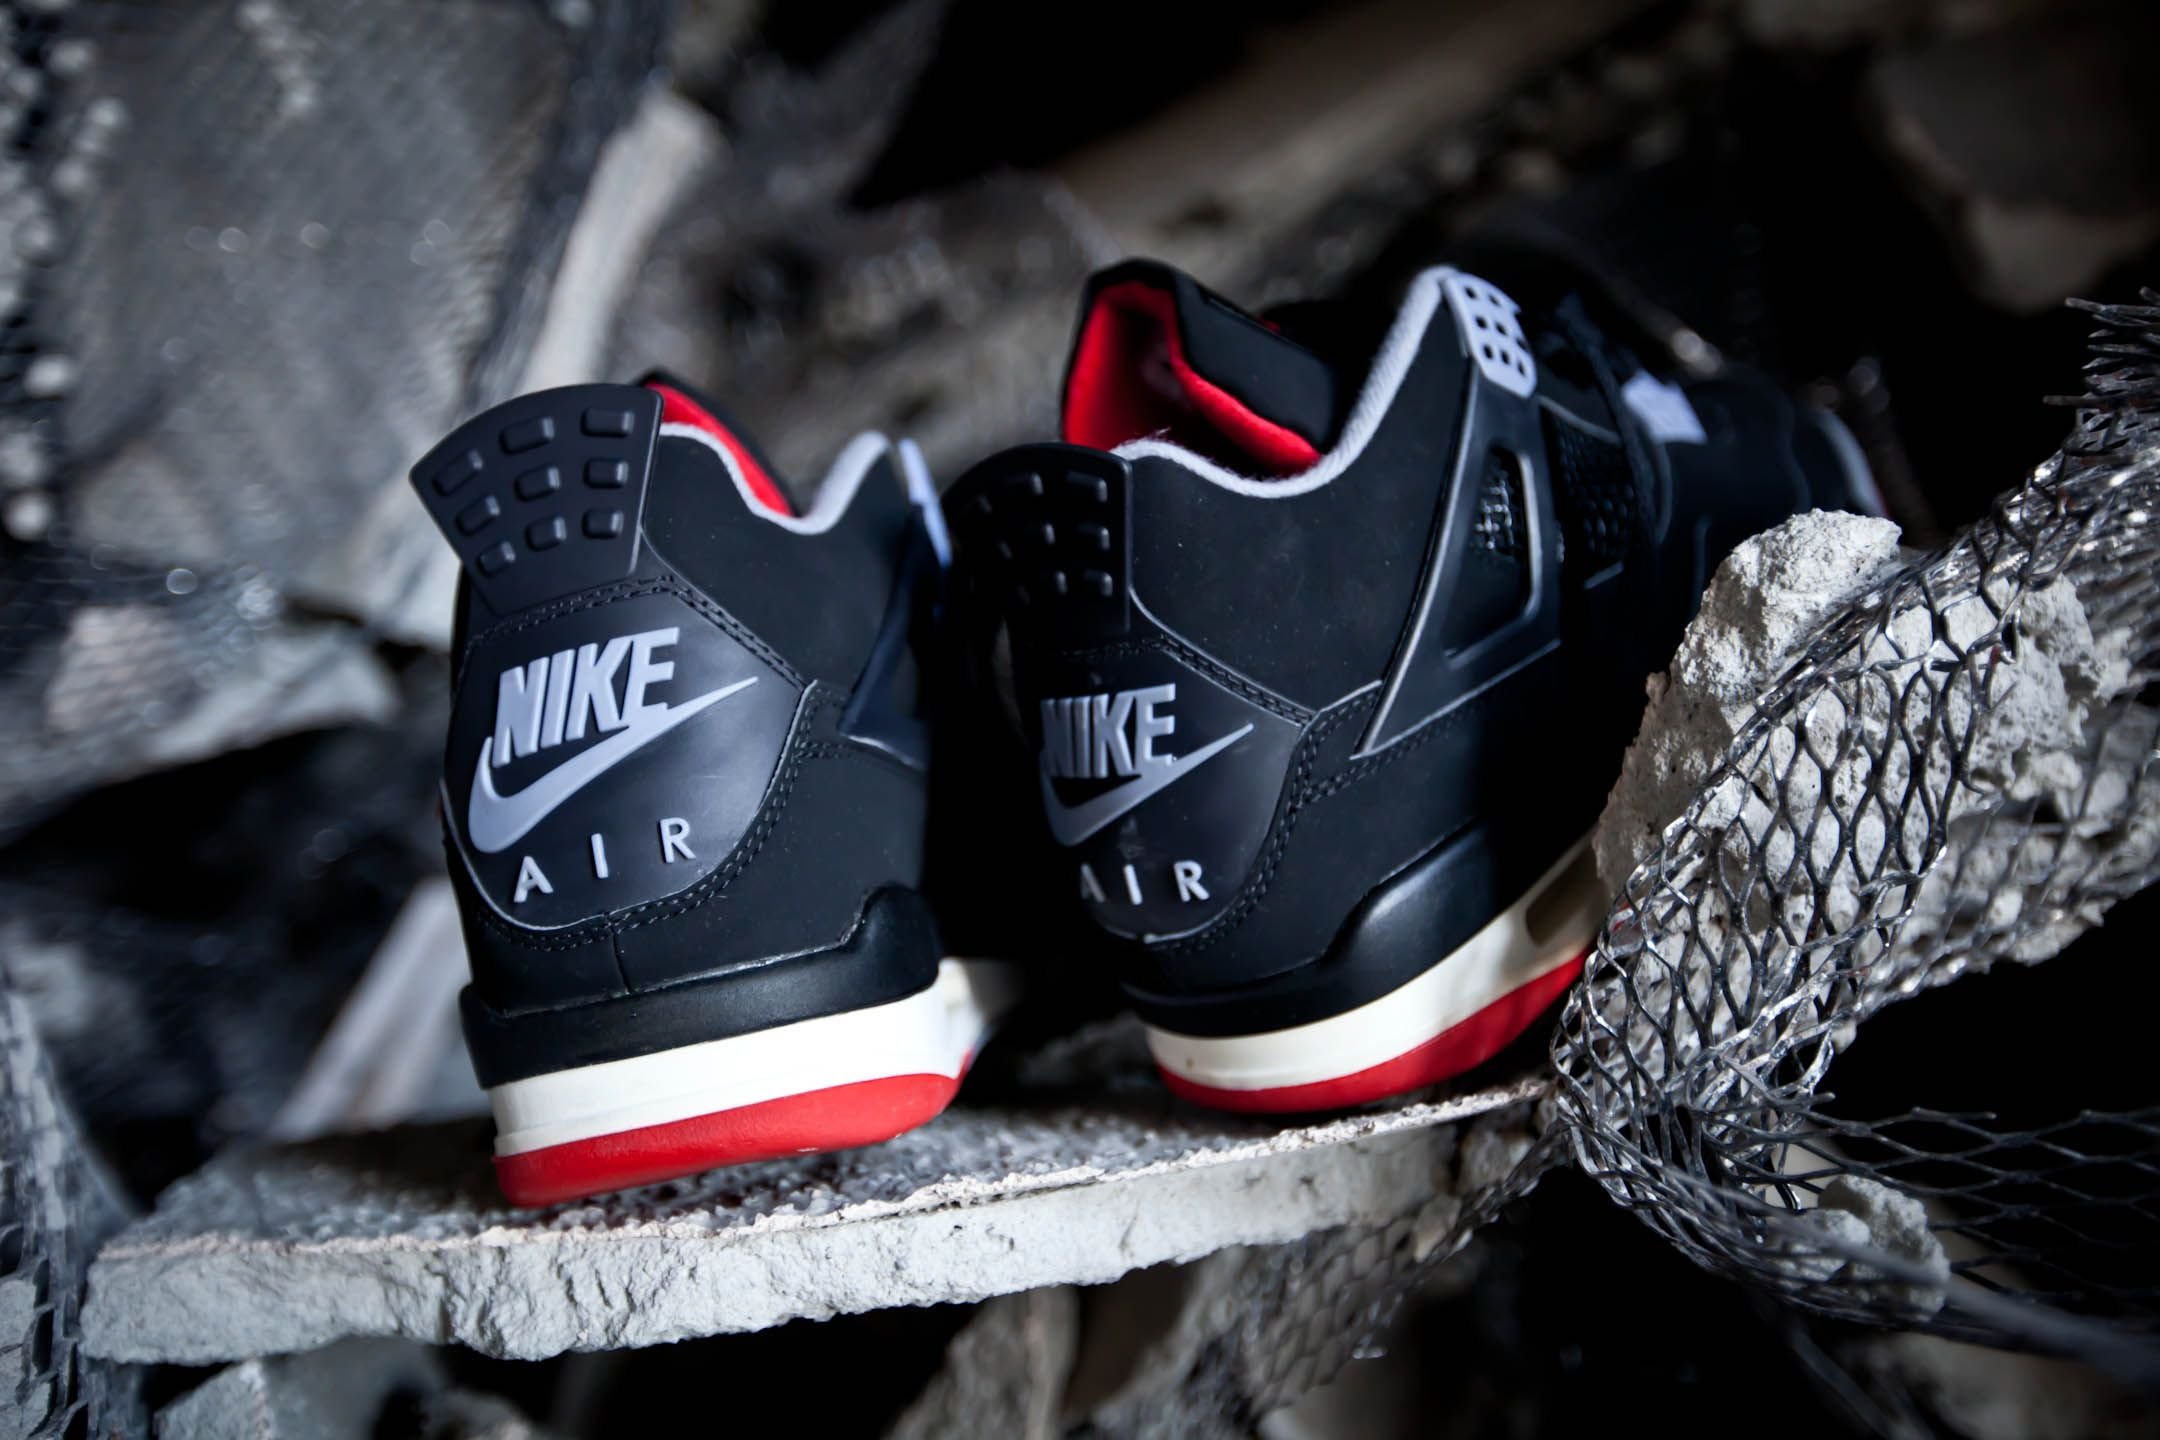 Nike Air Jordan 4 Retro Bred to Return in the New Year